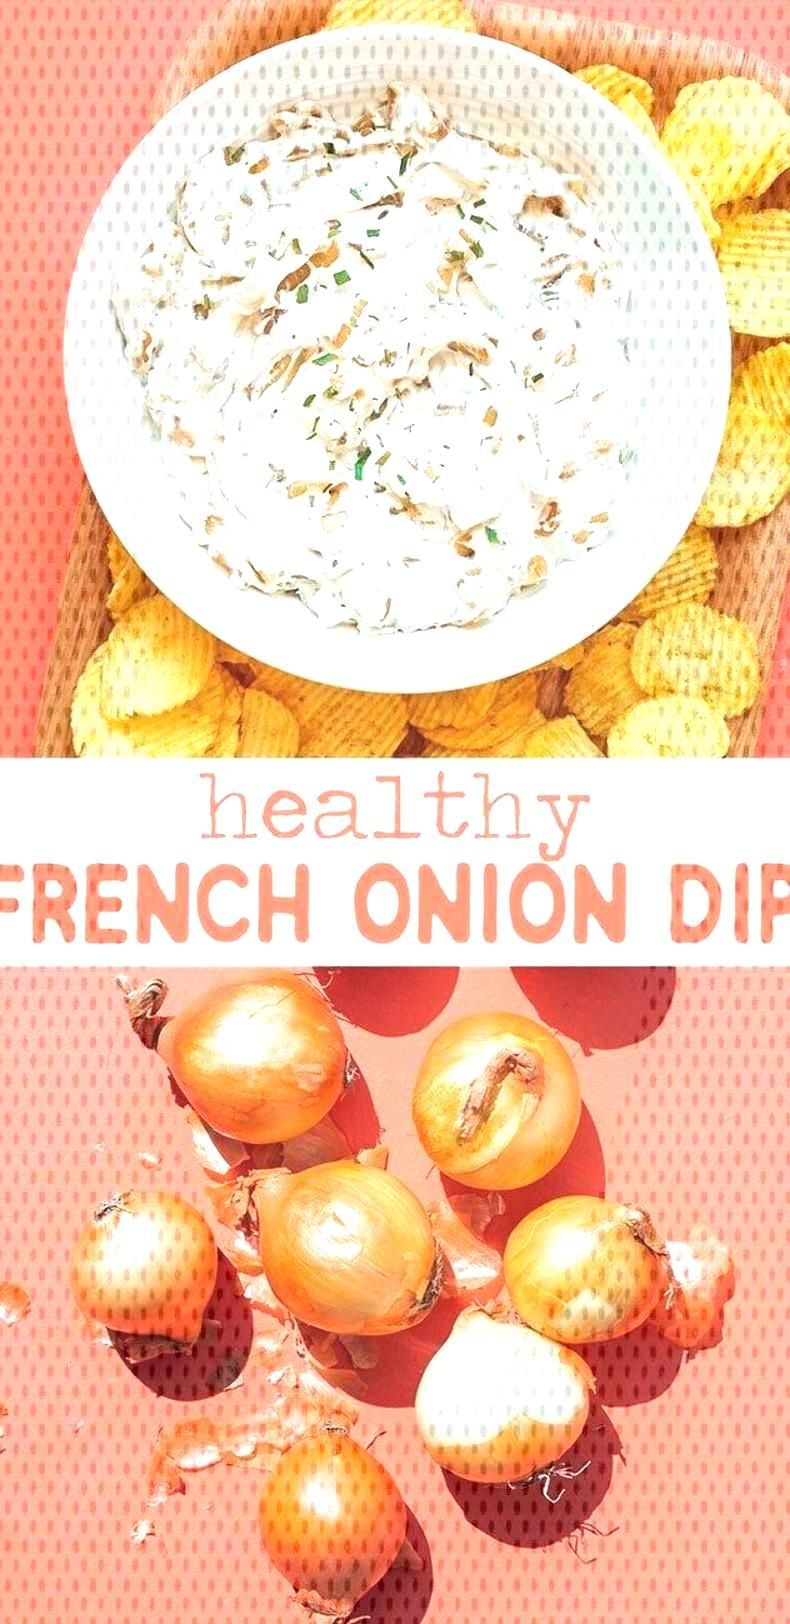 This healthy French Onion Dip recipe is made with protein-rich, creamy Greek yogurt and deeply cara